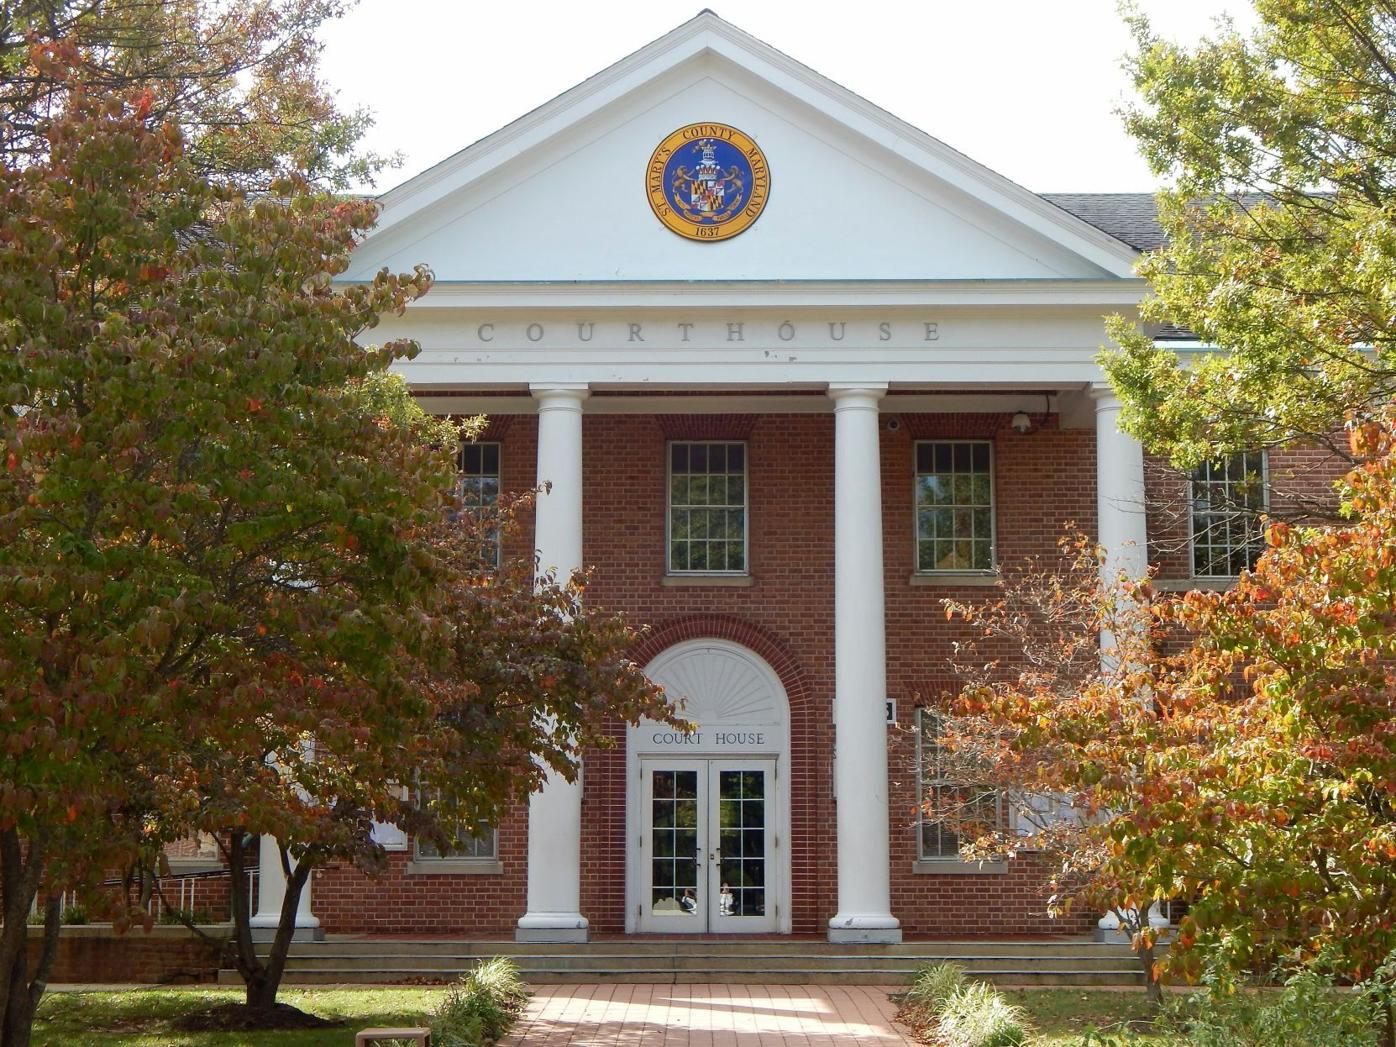 The John Hanson Briscoe Circuit Courthouse for St. Mary's County is located in Leonardtown.